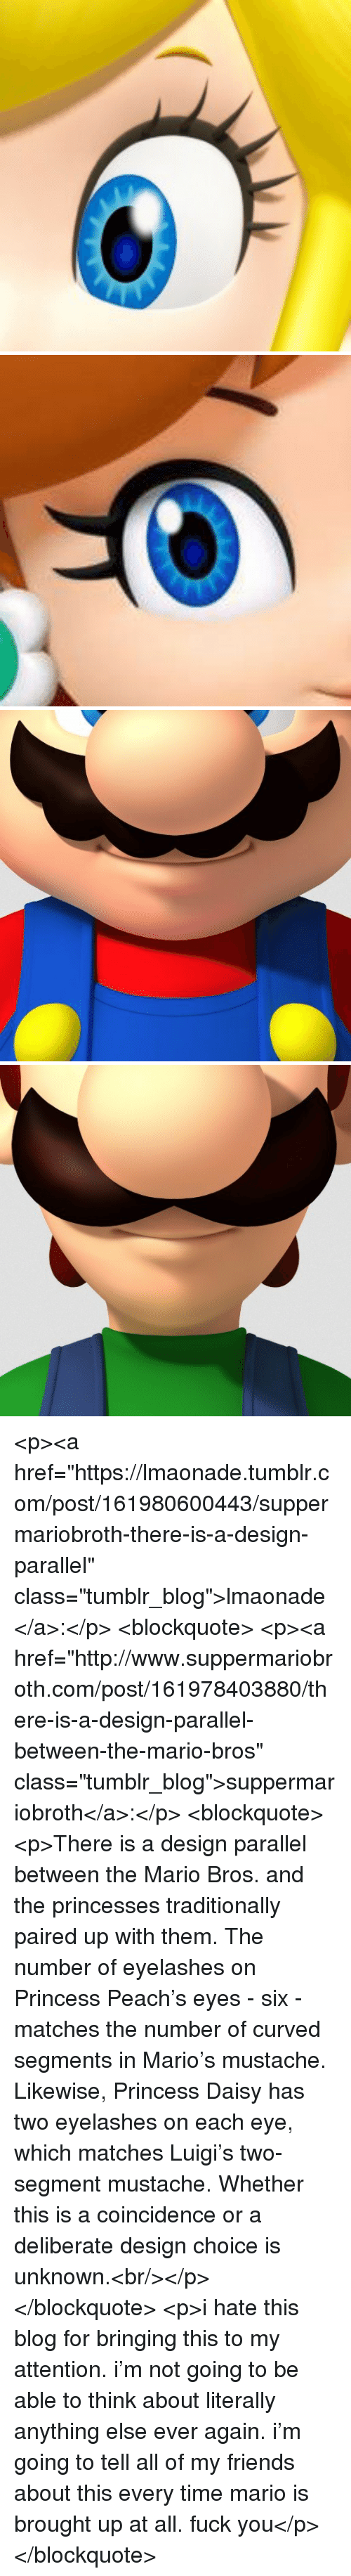 """Friends, Fuck You, and Tumblr: <p><a href=""""https://lmaonade.tumblr.com/post/161980600443/suppermariobroth-there-is-a-design-parallel"""" class=""""tumblr_blog"""">lmaonade</a>:</p> <blockquote> <p><a href=""""http://www.suppermariobroth.com/post/161978403880/there-is-a-design-parallel-between-the-mario-bros"""" class=""""tumblr_blog"""">suppermariobroth</a>:</p> <blockquote><p>There is a design parallel between the Mario Bros. and the princesses traditionally paired up with them. The number of eyelashes on Princess Peach's eyes - six - matches the number of curved segments in Mario's mustache. Likewise, Princess Daisy has two eyelashes on each eye, which matches Luigi's two-segment mustache. Whether this is a coincidence or a deliberate design choice is unknown.<br/></p></blockquote>  <p>i hate this blog for bringing this to my attention. i'm not going to be able to think about literally anything else ever again. i'm going to tell all of my friends about this every time mario is brought up at all. fuck you</p> </blockquote>"""